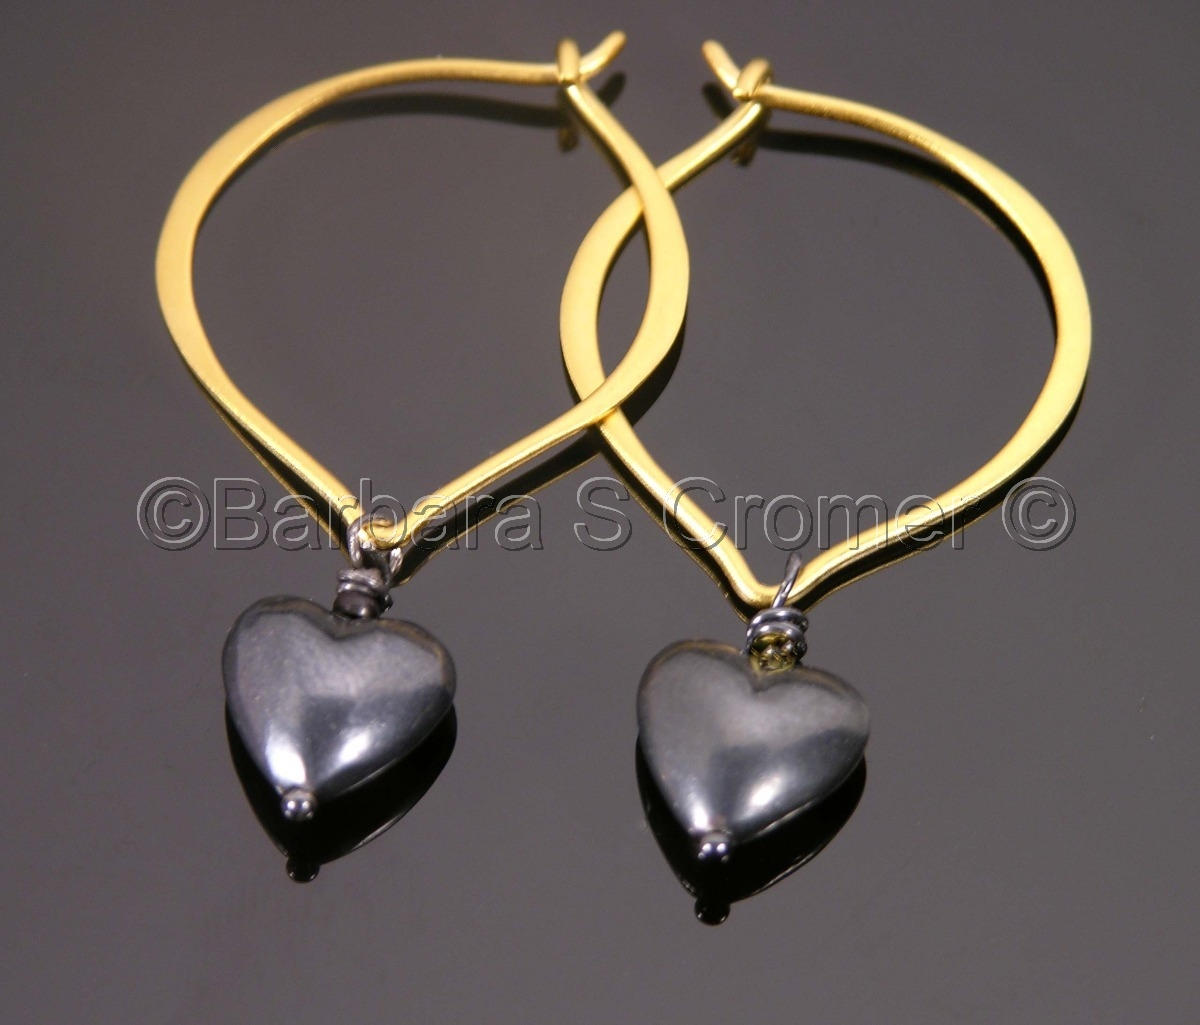 earrings of satin black finished Sterling silver Sophisticated hearts earrings Satin black finished hearts hanging gracefully from handmade Vermeil lotus ear wires, 2 inches (large view)